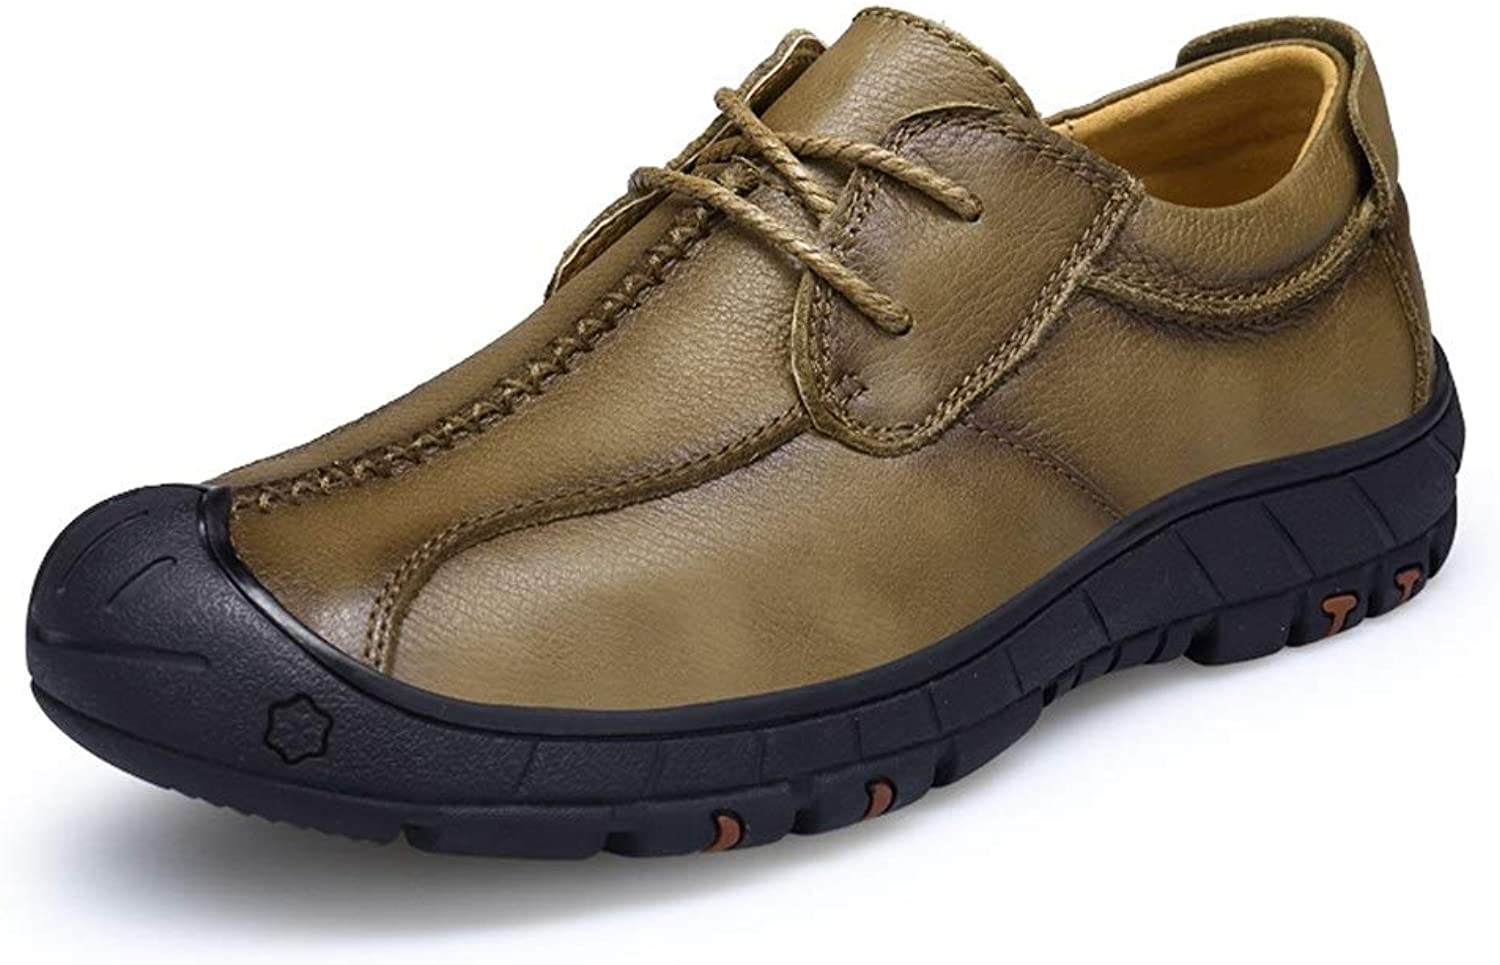 Easy Go Shopping Oxford shoes For Men Outdoor Loafer Lace Up OX Leather Light And Flexible Collision-resistant Toe Cricket shoes (color   Khaki, Size   7.5 UK)